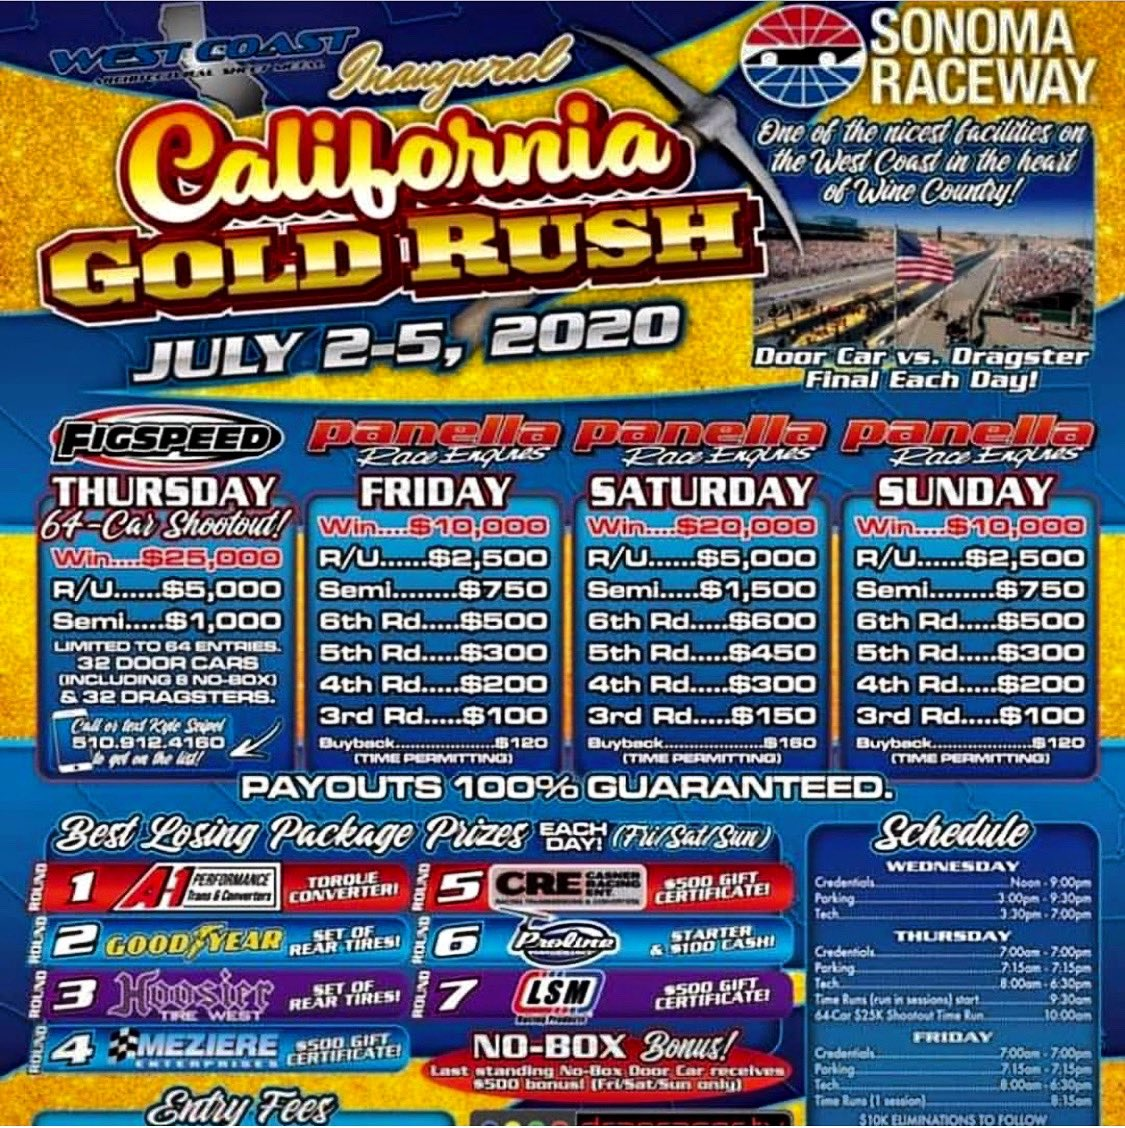 We are proud to be sponsoring the Inaugural California Gold Rush @racesonoma this weekend.  Good luck to all the racers competing!  Have fun out there and Happy Independence Day  to everyone.  #panellaraceengines #dragracing #sonomaracewaypic.twitter.com/120WxQDdJH